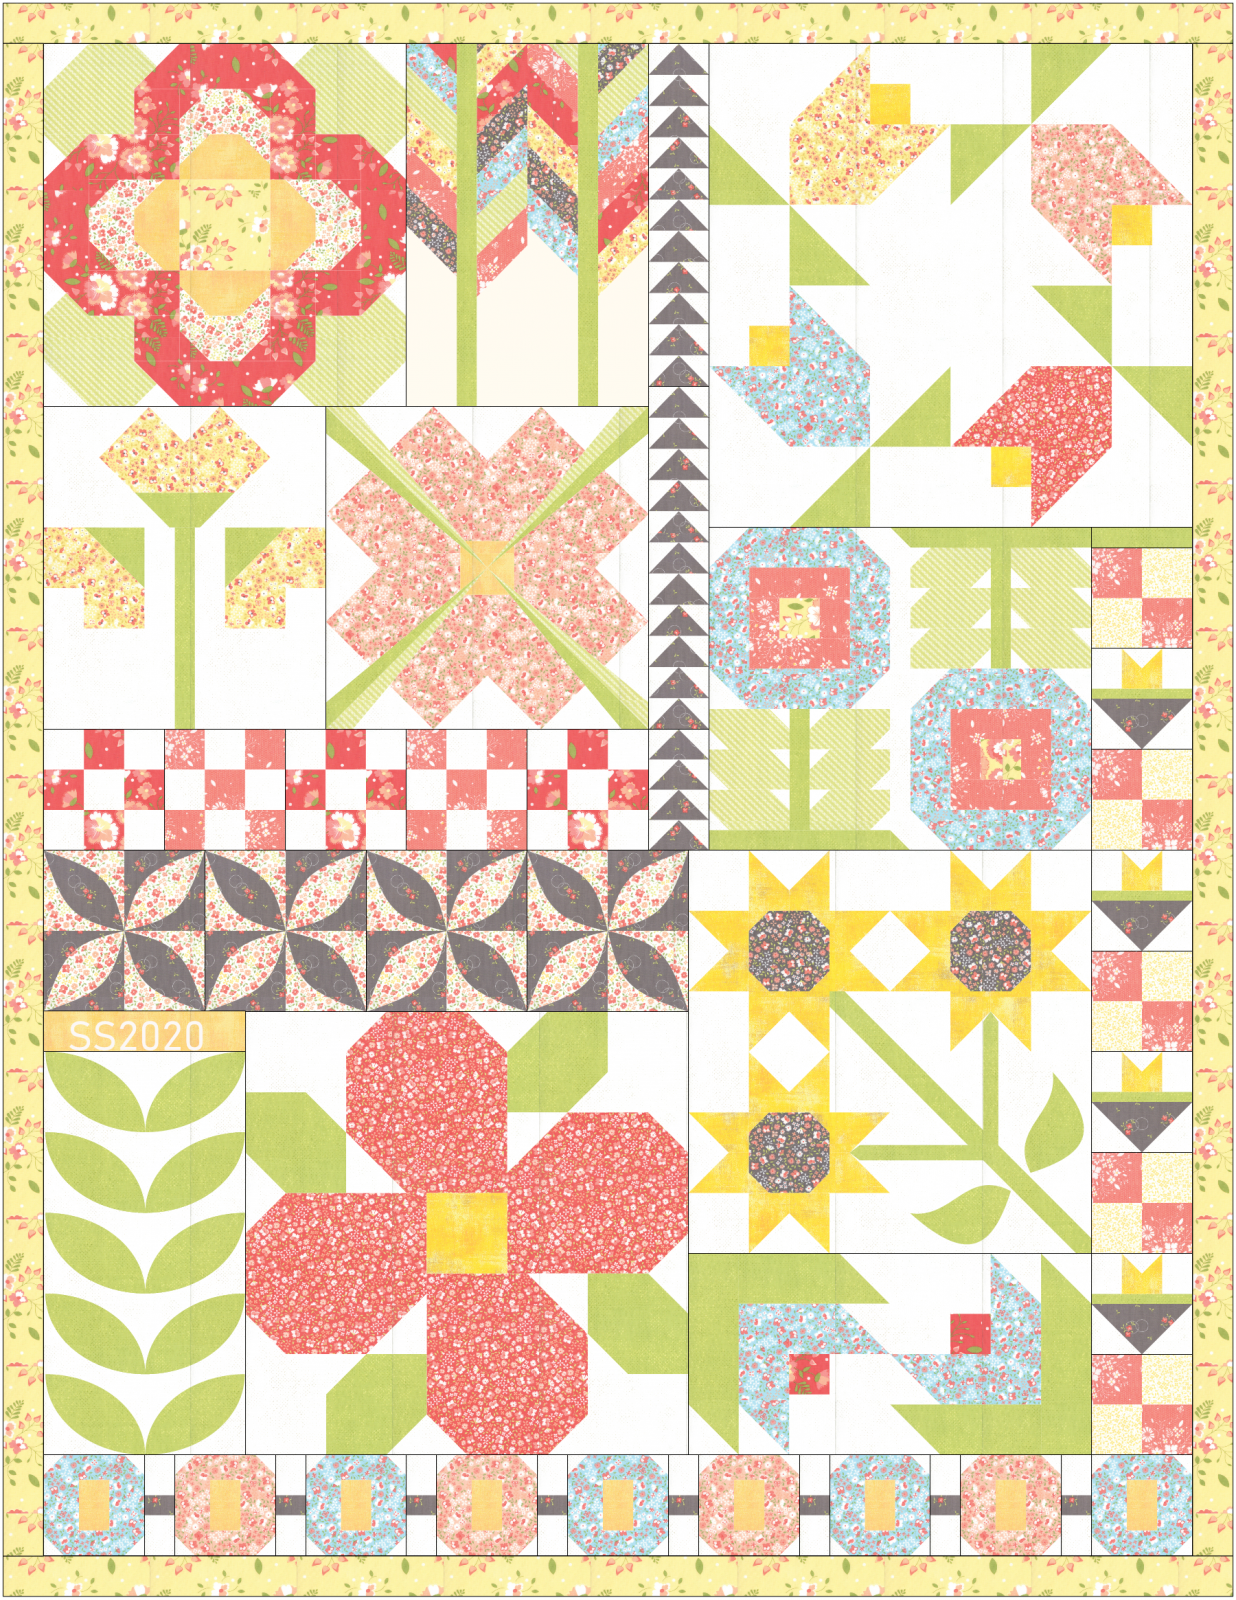 SS2020 Spring Quilt - Arrayed In Glory